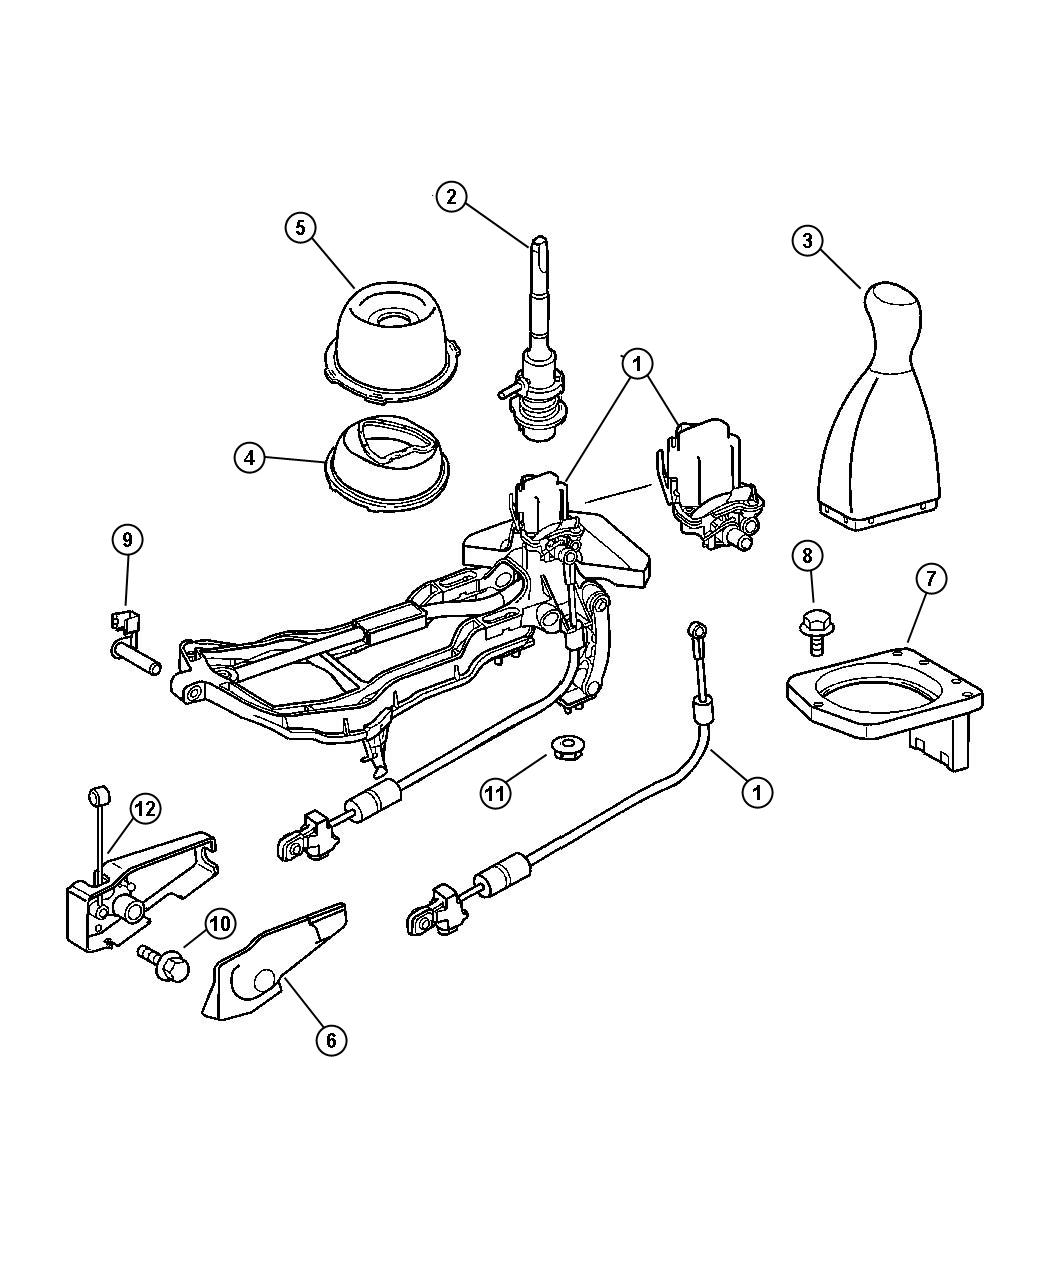 Service manual [Changeing Gear Shift Assembly 1996 Jeep